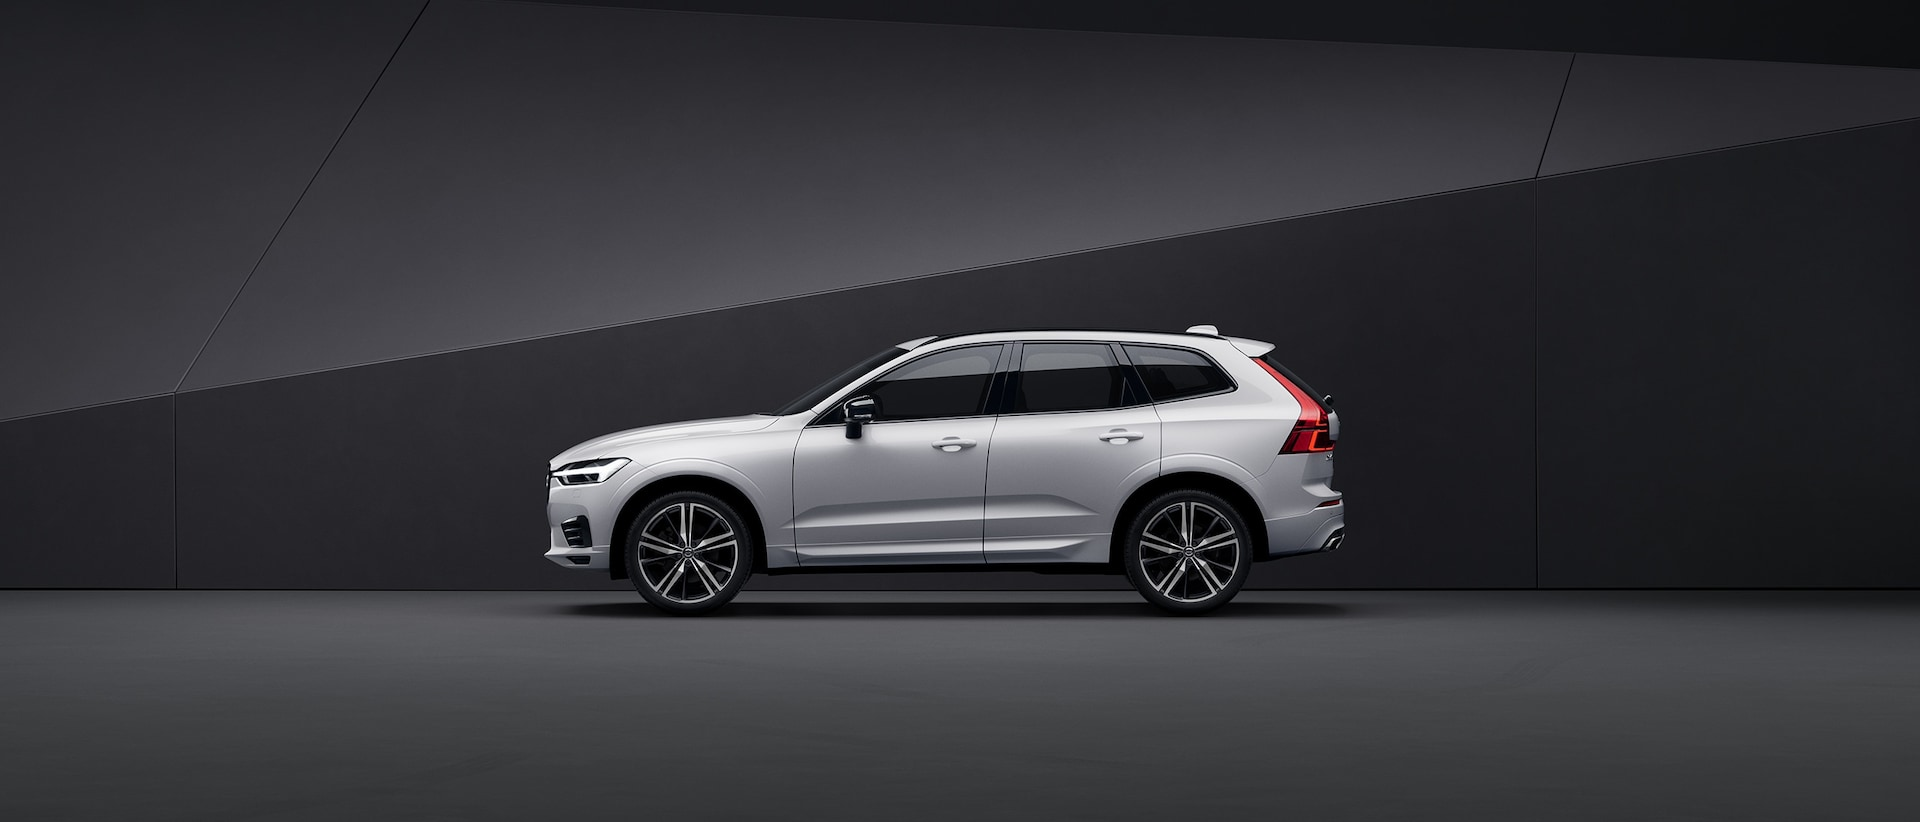 A white Volvo XC60 parked in a black surrounding